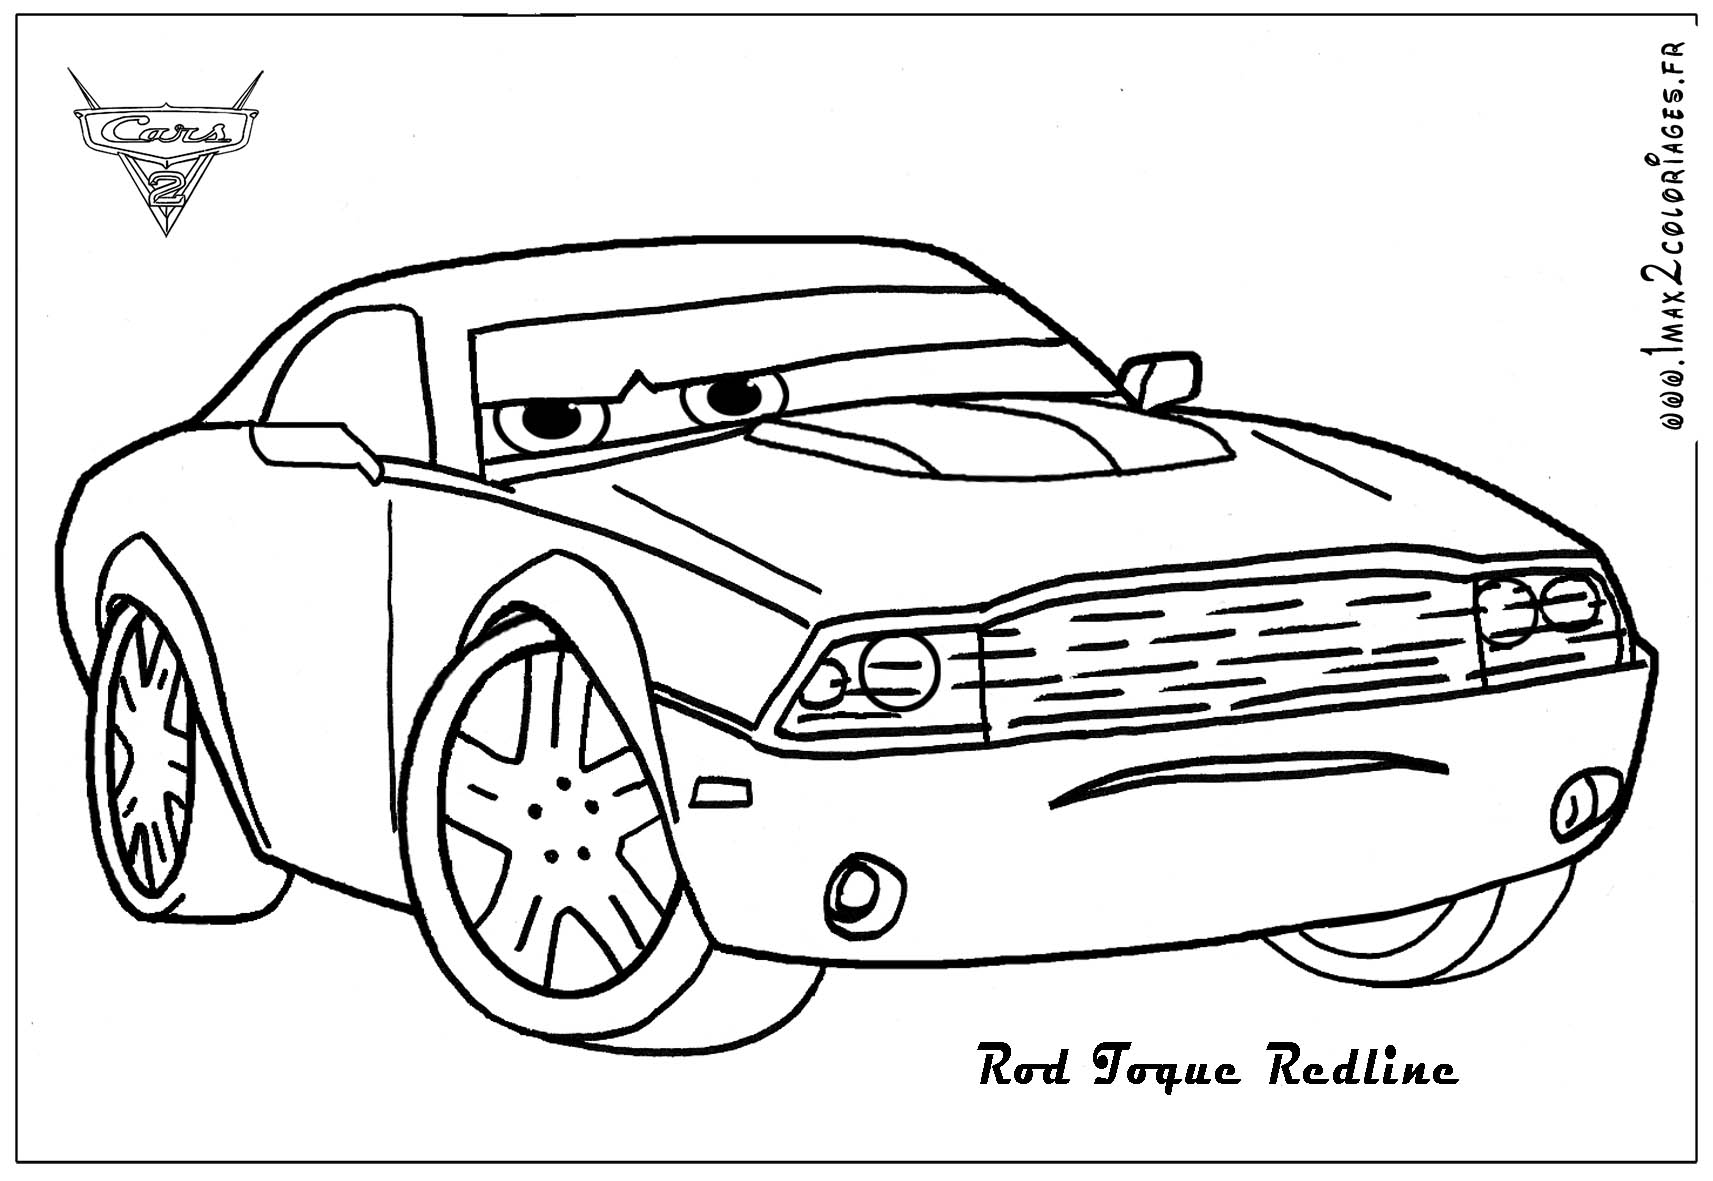 redline coloring pages | Coloriages cars 2 - Rod Torque Redline Cars 2 - Coloriages ...